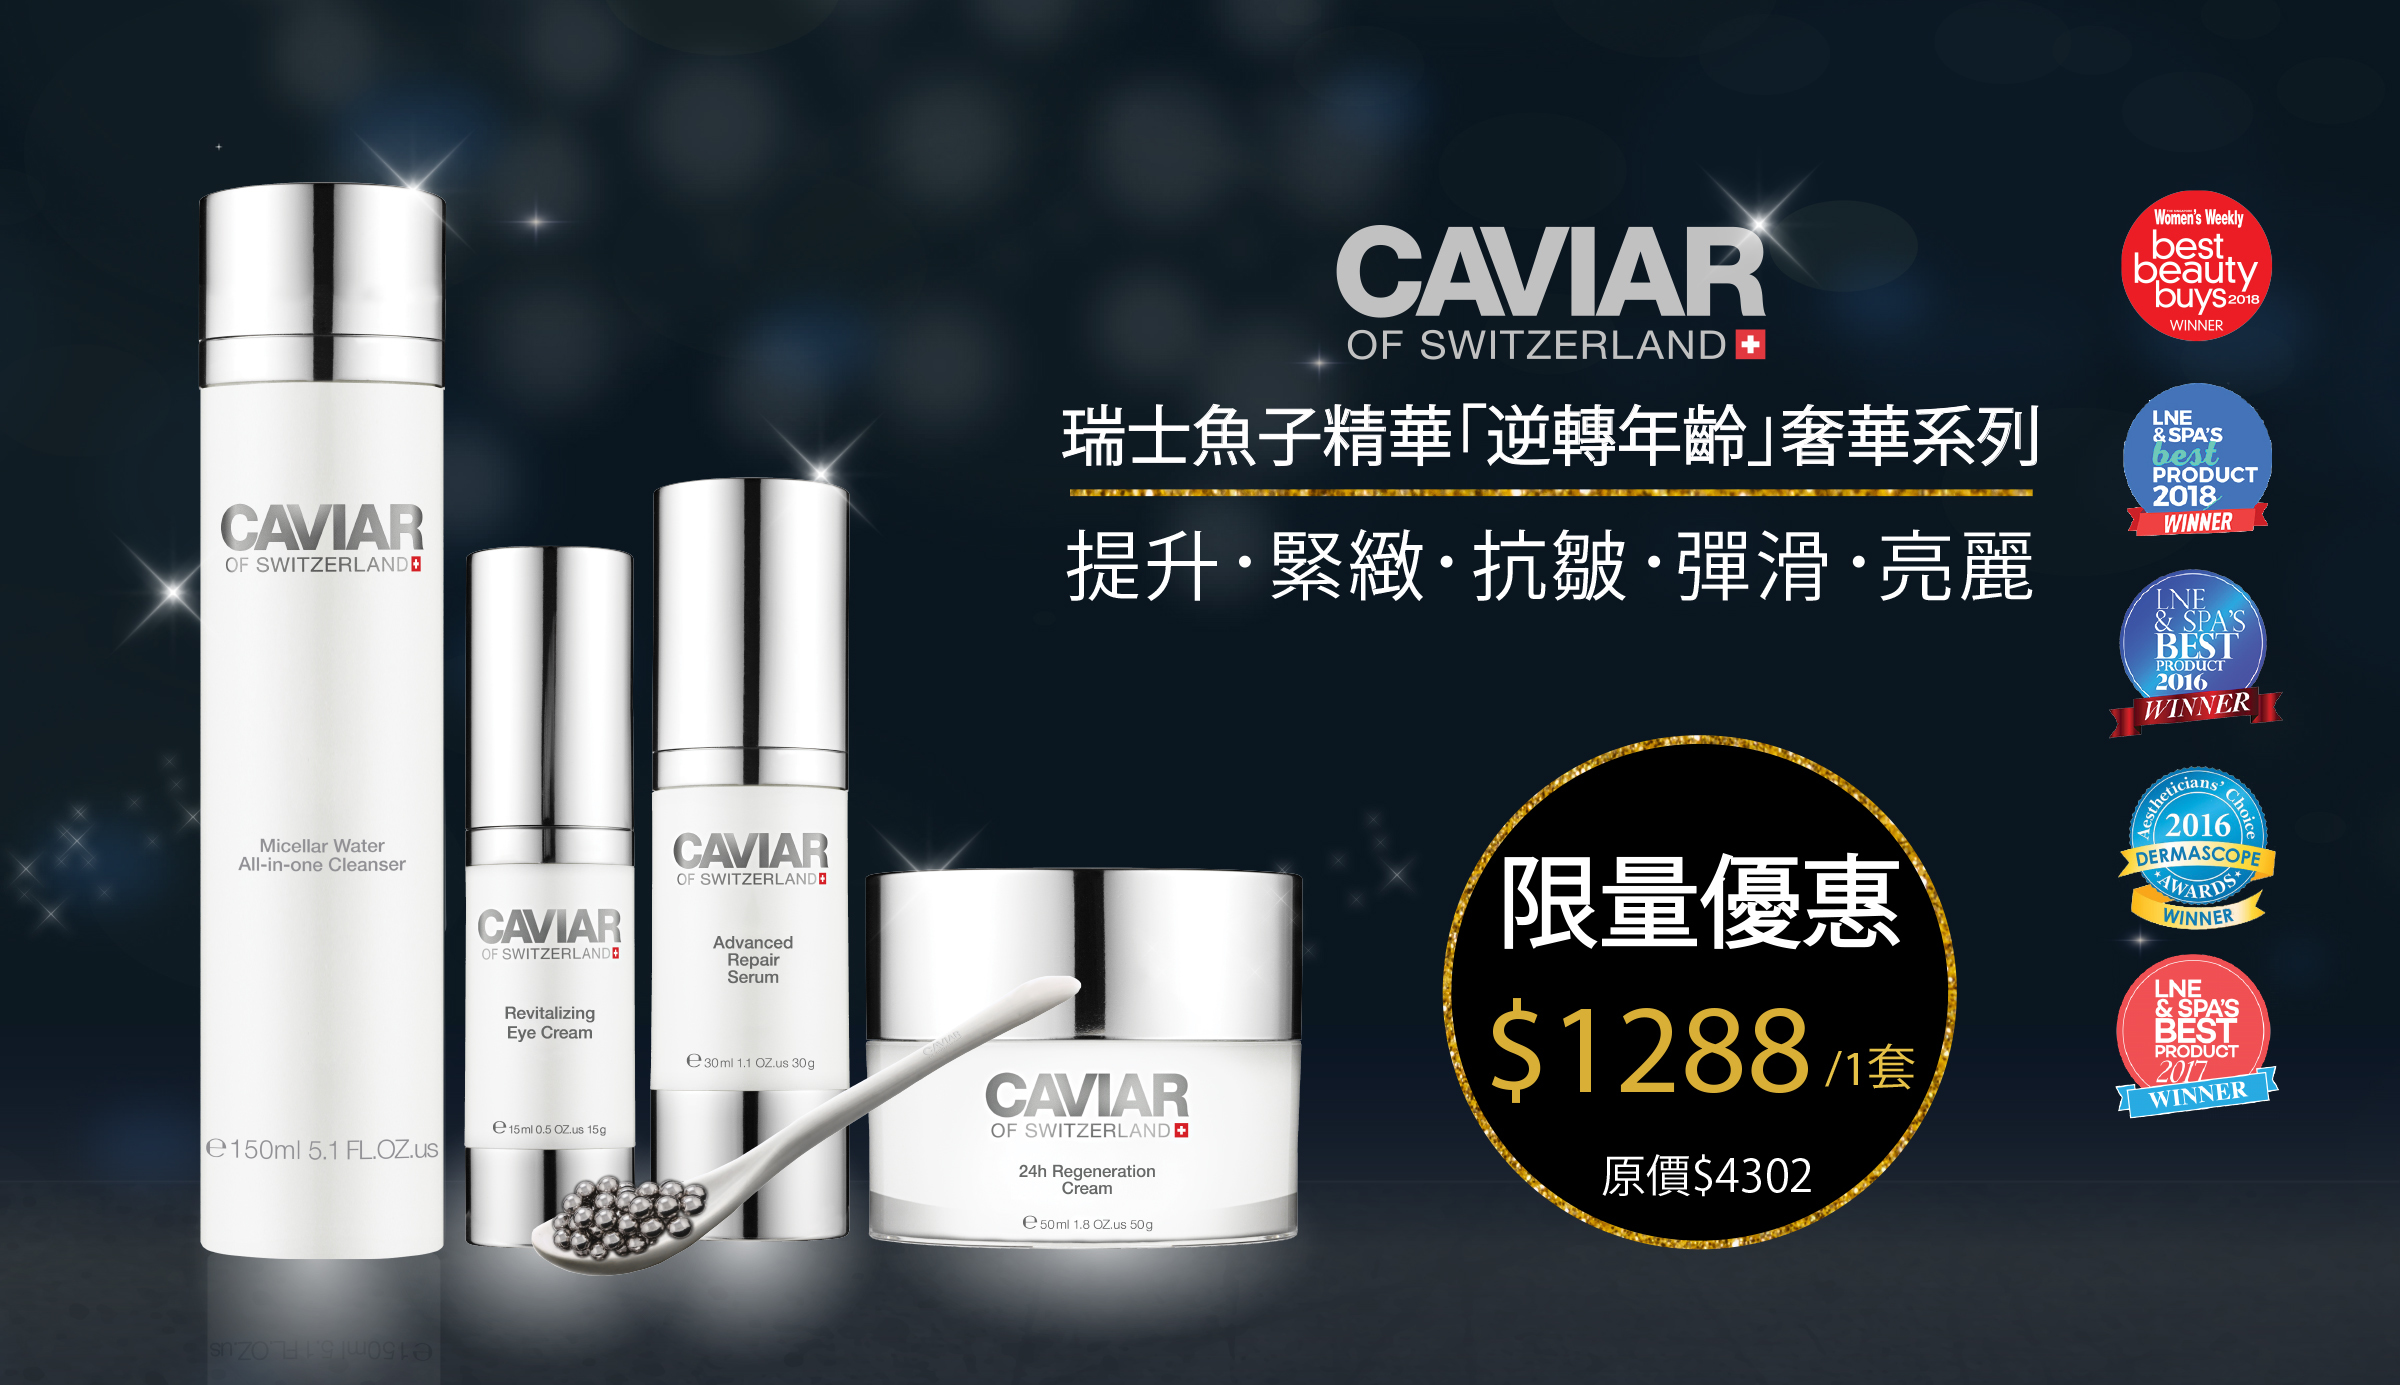 caviar of Switzerland offer eye cream regeneration micellar water